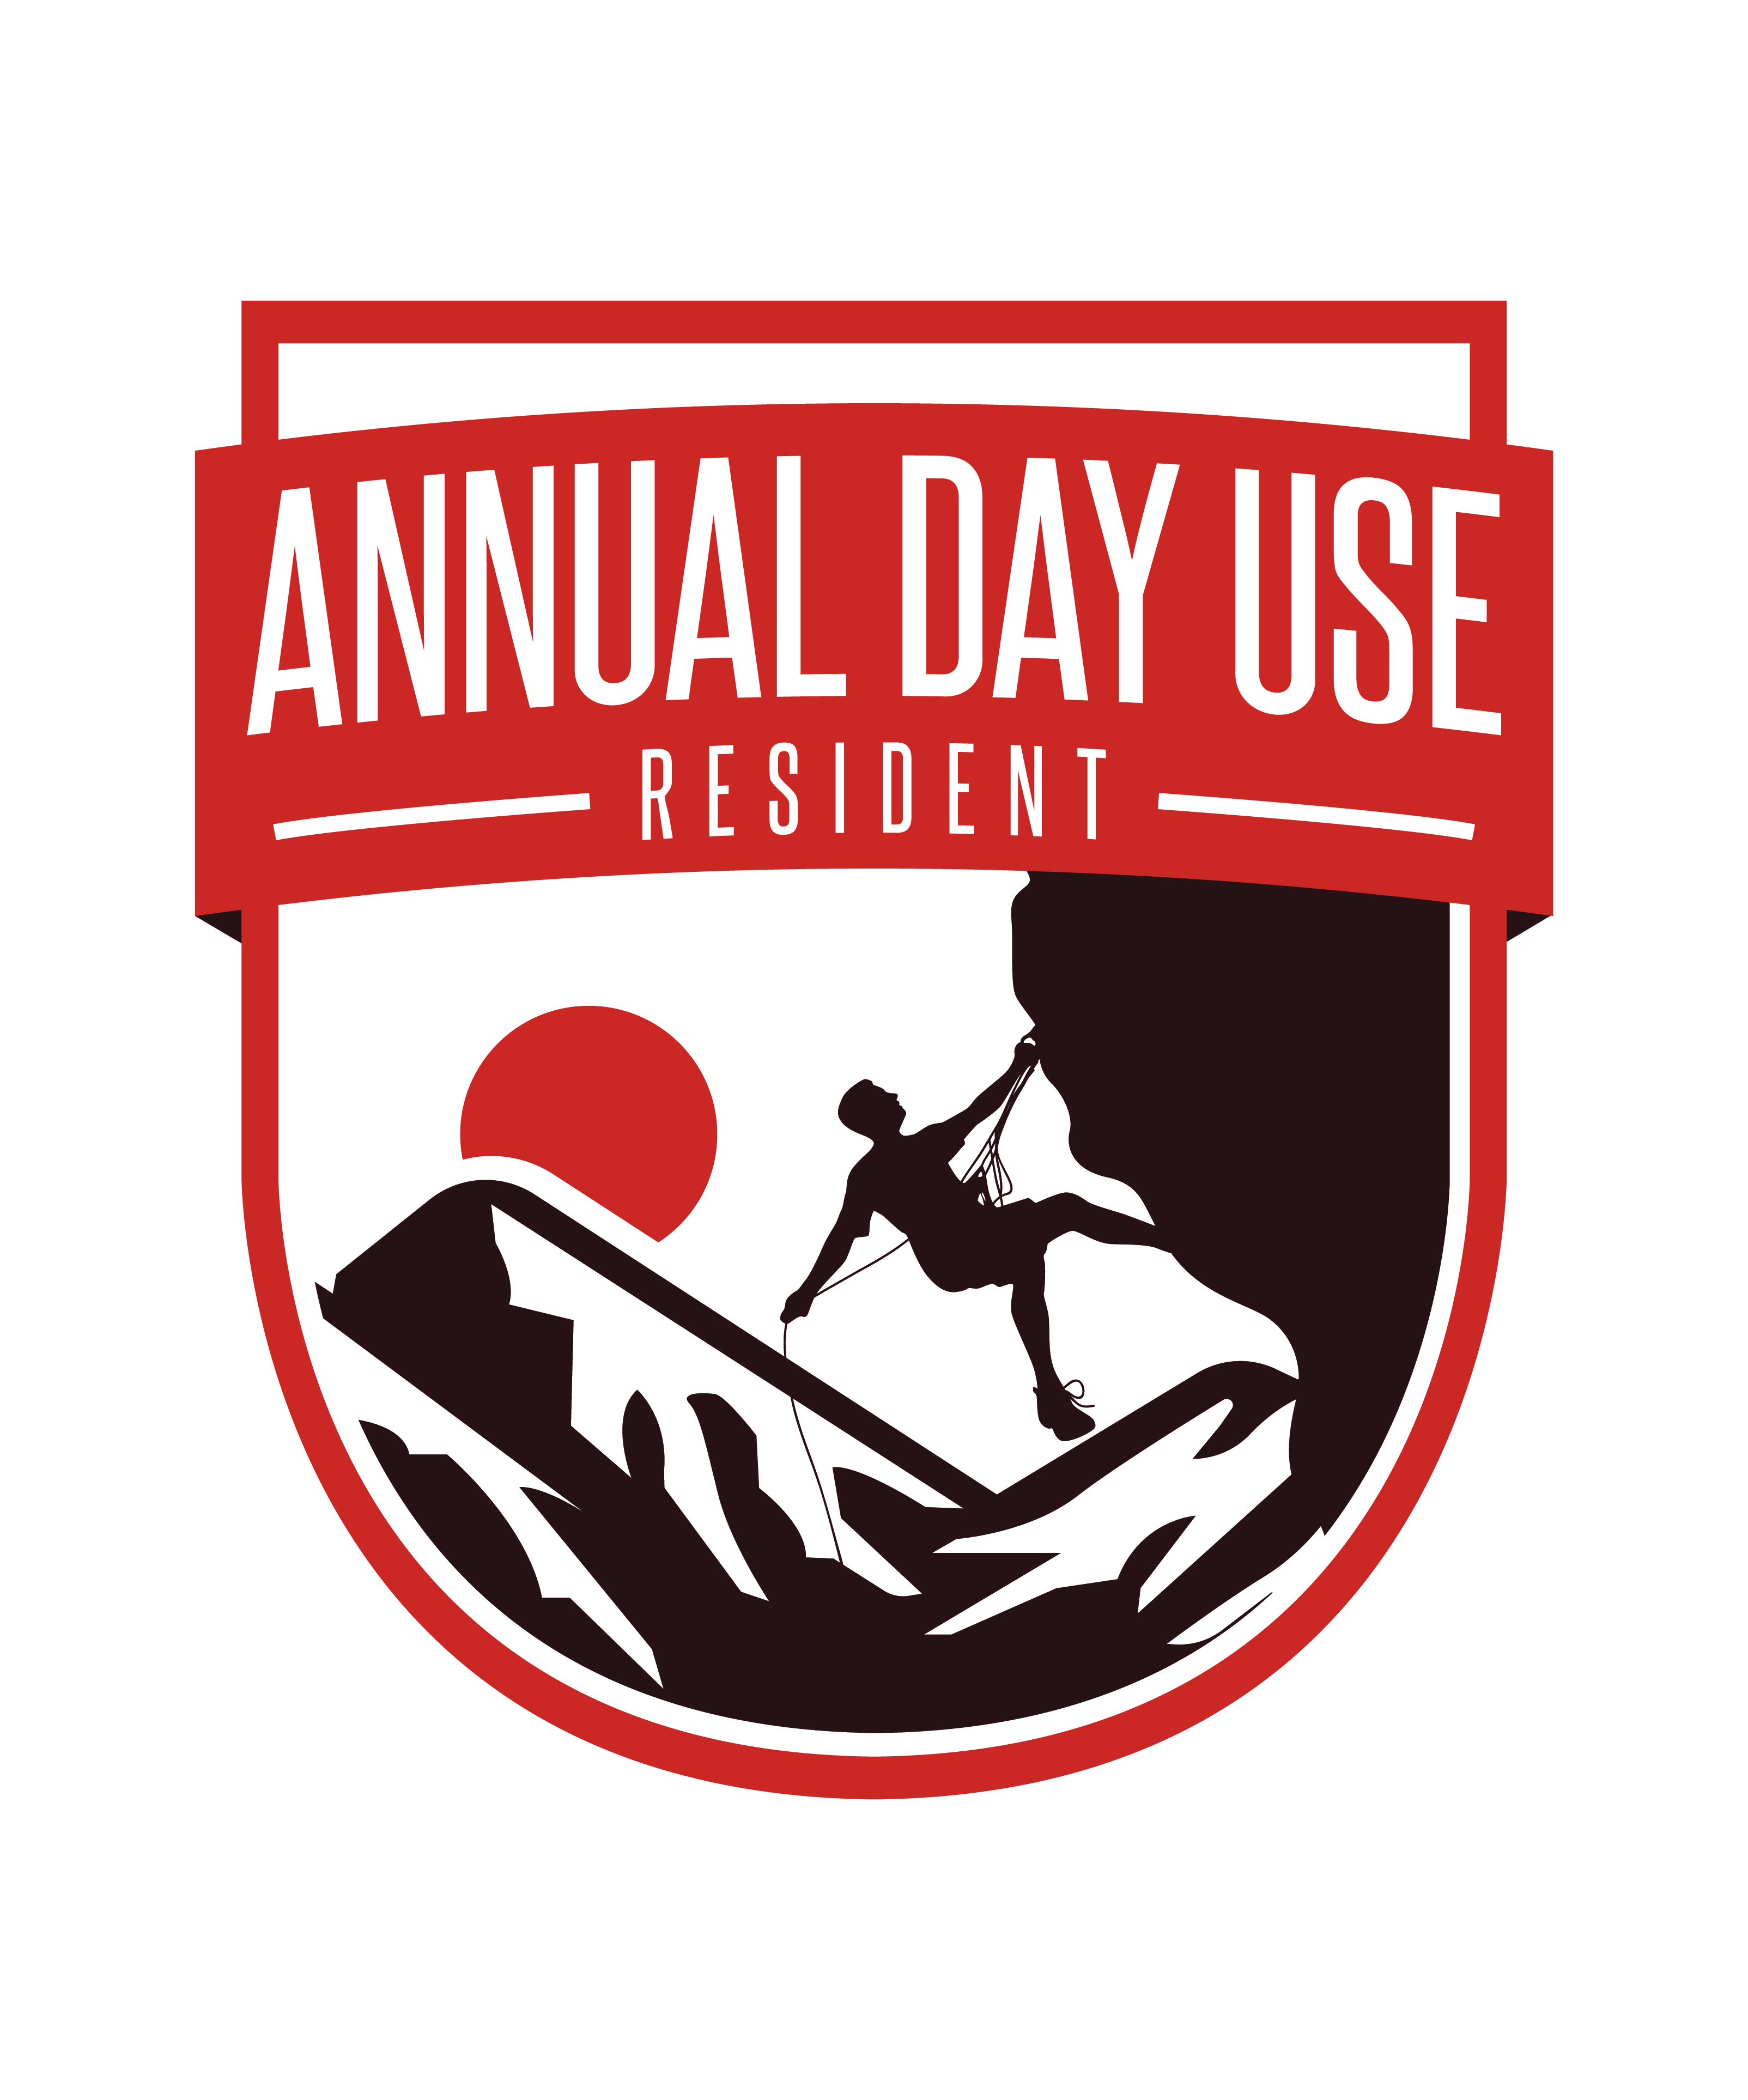 2018 Annual Day Use - Resident